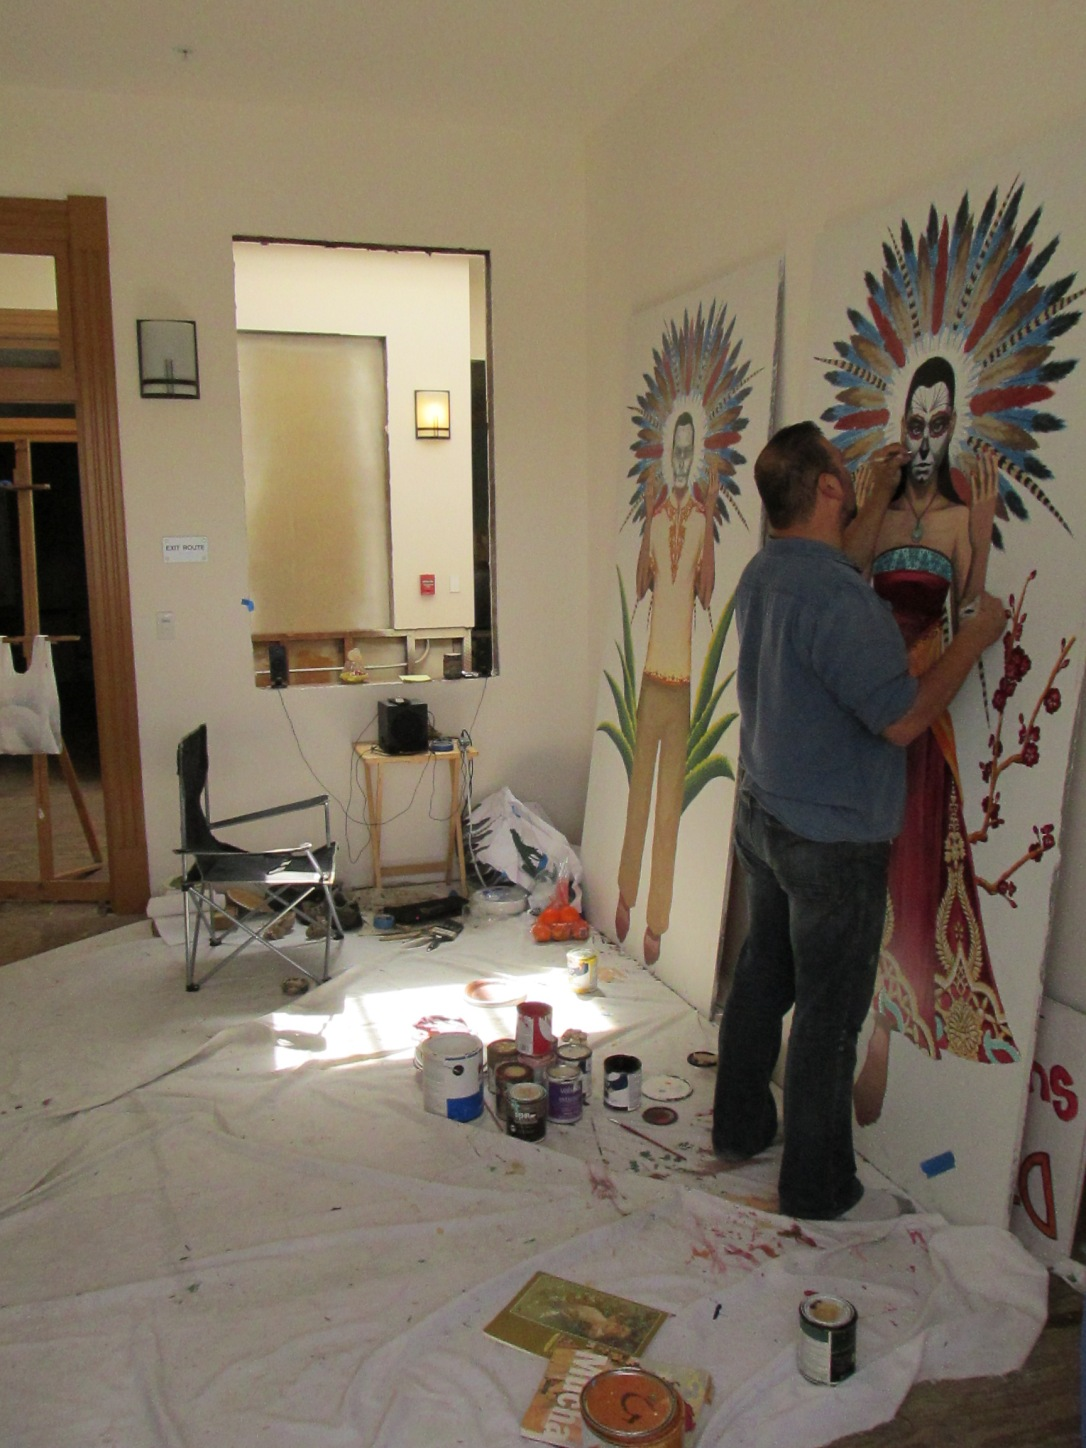 Sometimes you may find a local artist working on his stuff in an Open Studio day on the same level as where the America Tropical mural stands.